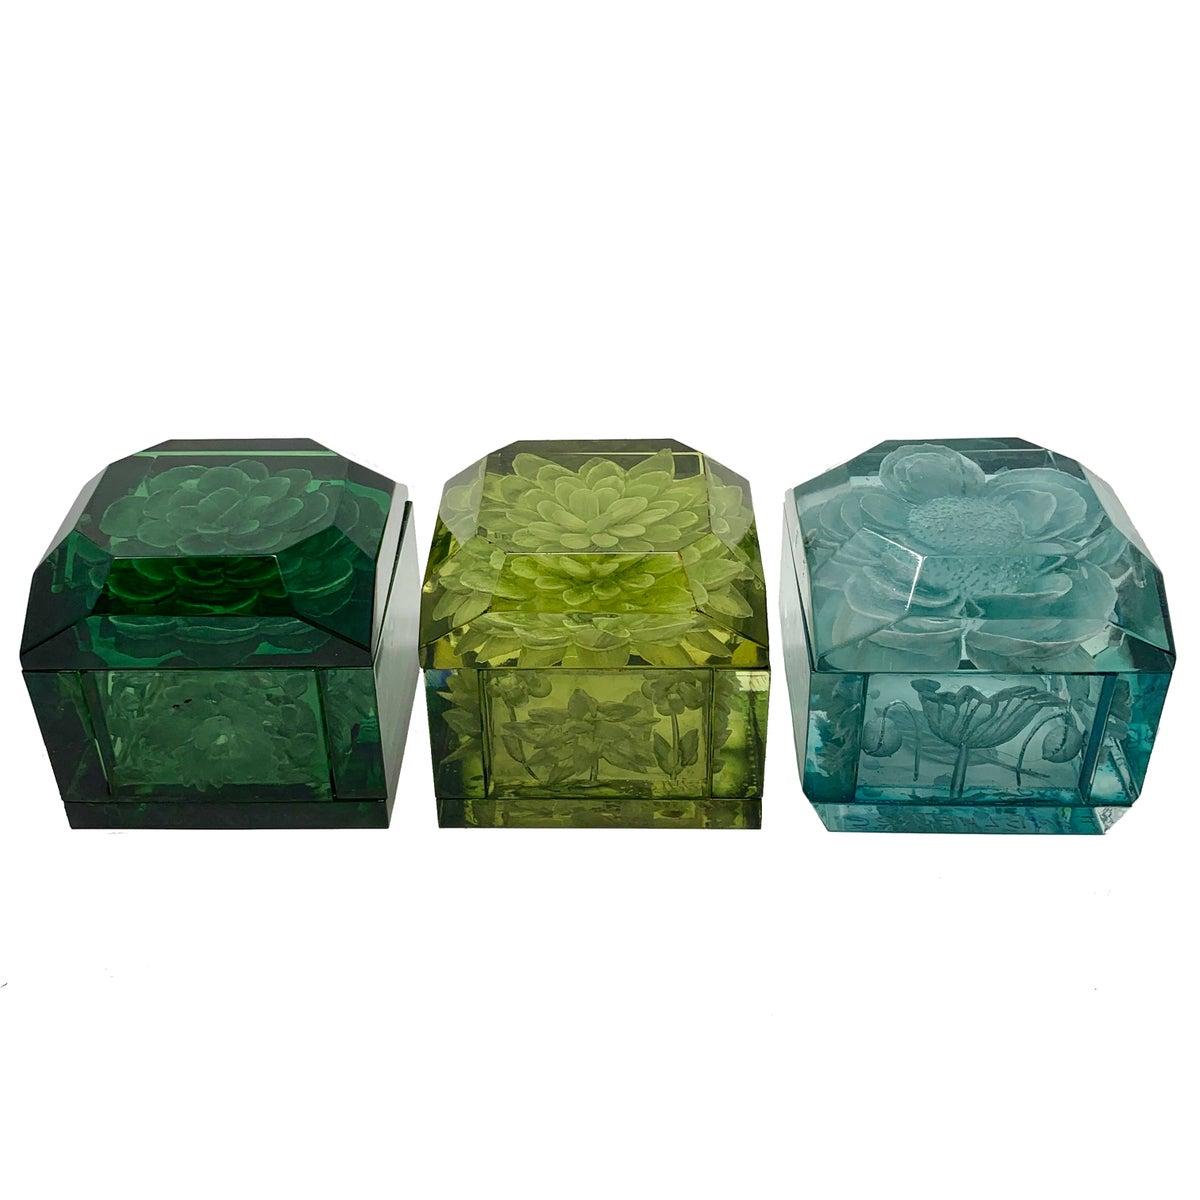 Image of Mini Lucite Boxes (Green Tones)